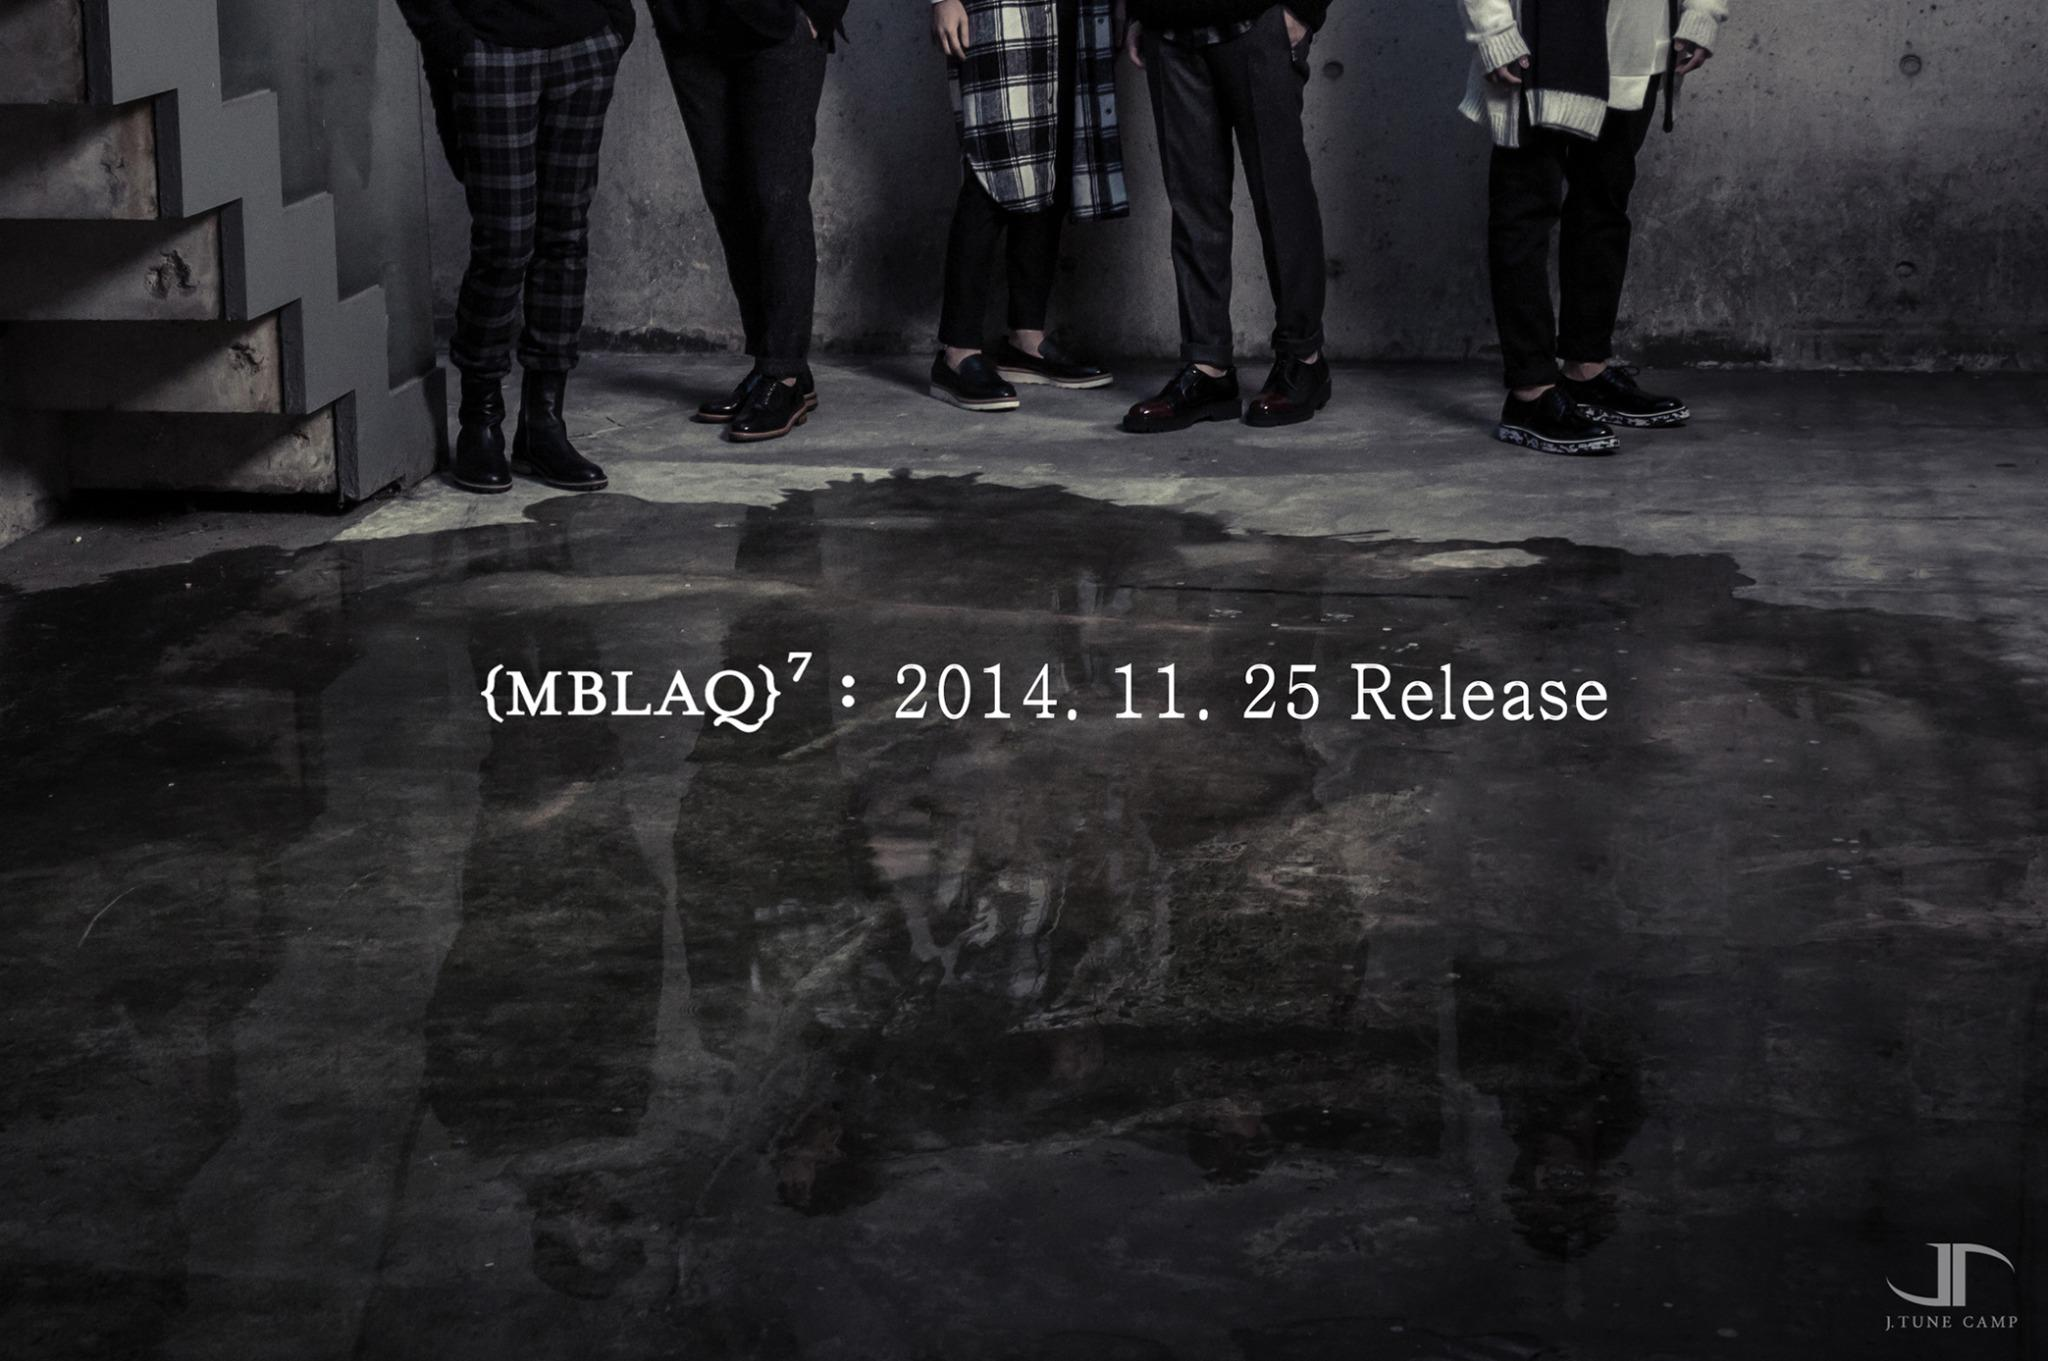 RT @JTune_official: [#MBLAQ] 2014. 11. 25. Release #??? http://t.co/iy8OnPx46o